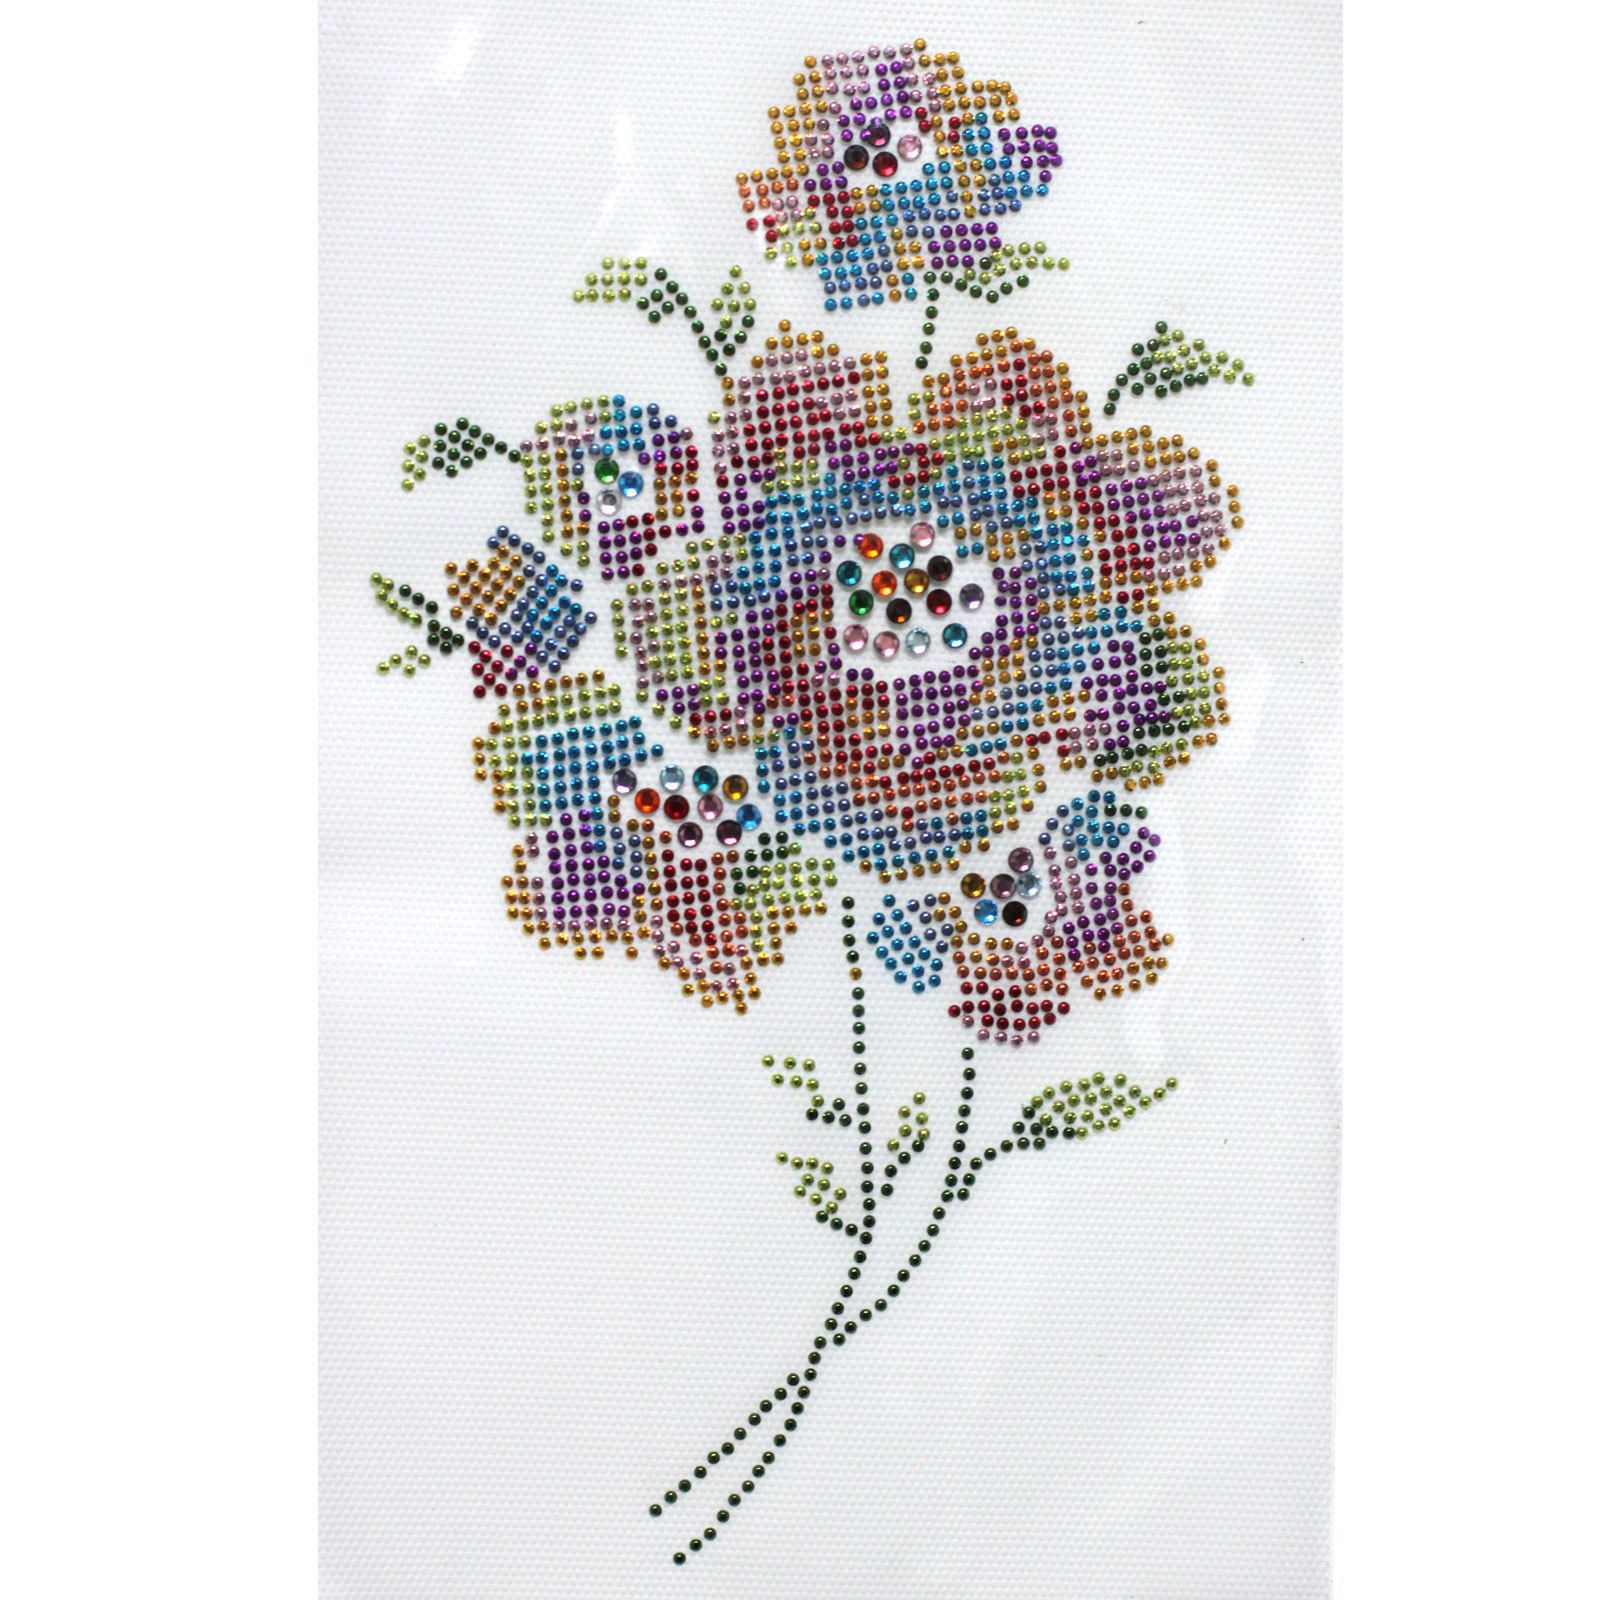 Rhinestone Iron on Transfer Hot Fix Motif Beautiful Flowers Deco Fashion Design | eBay